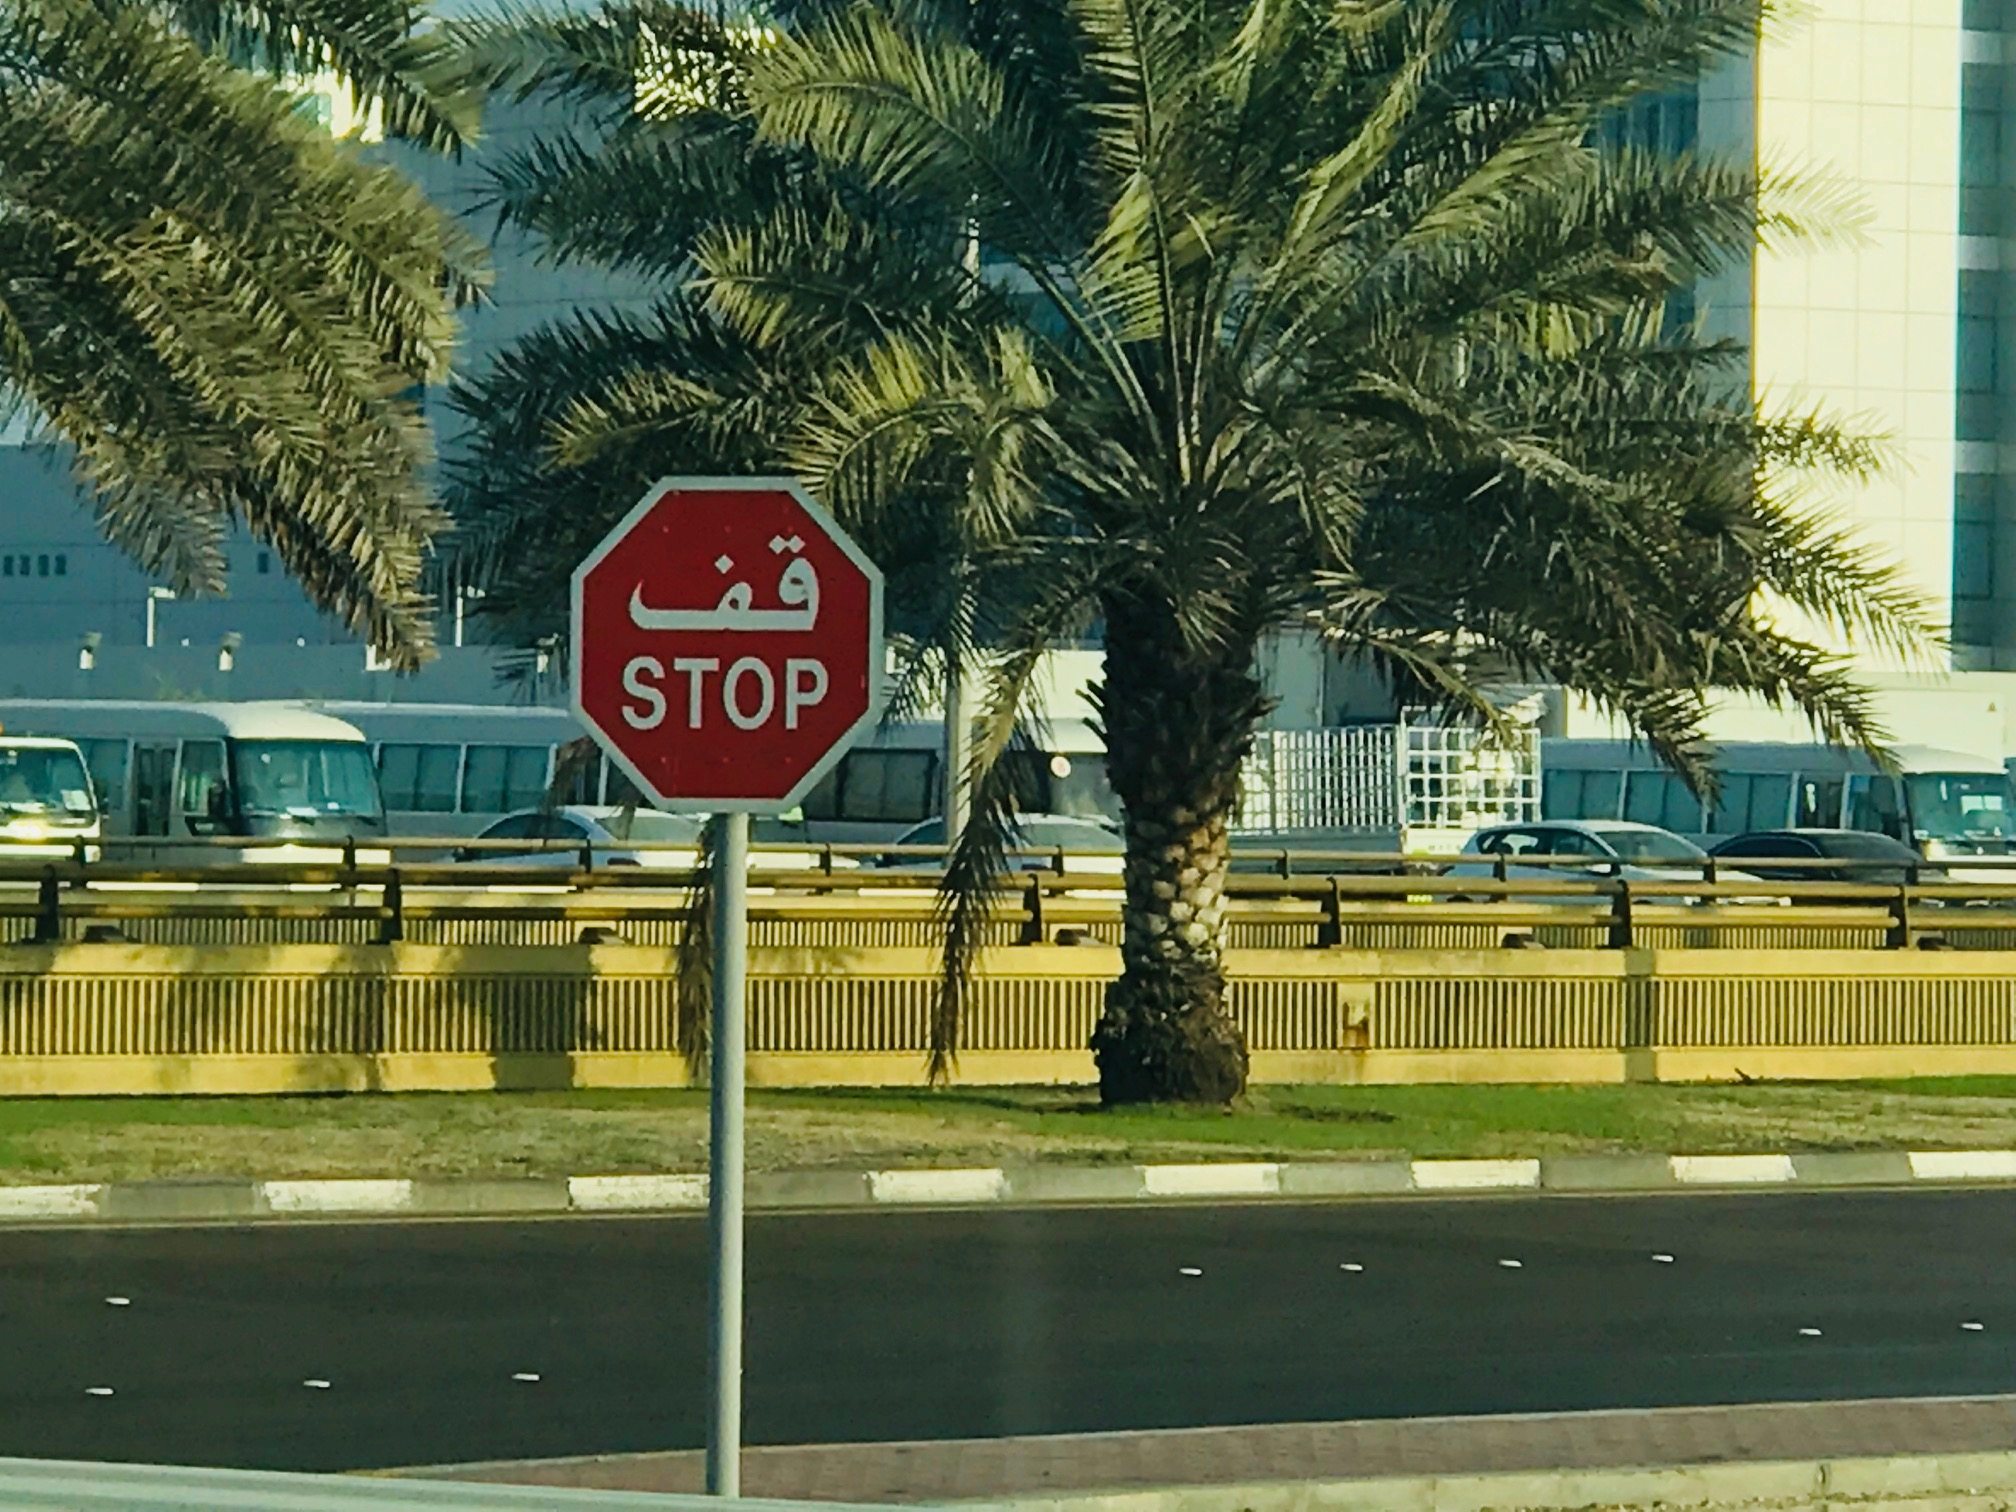 Stop, and then go Abu Dhabi.